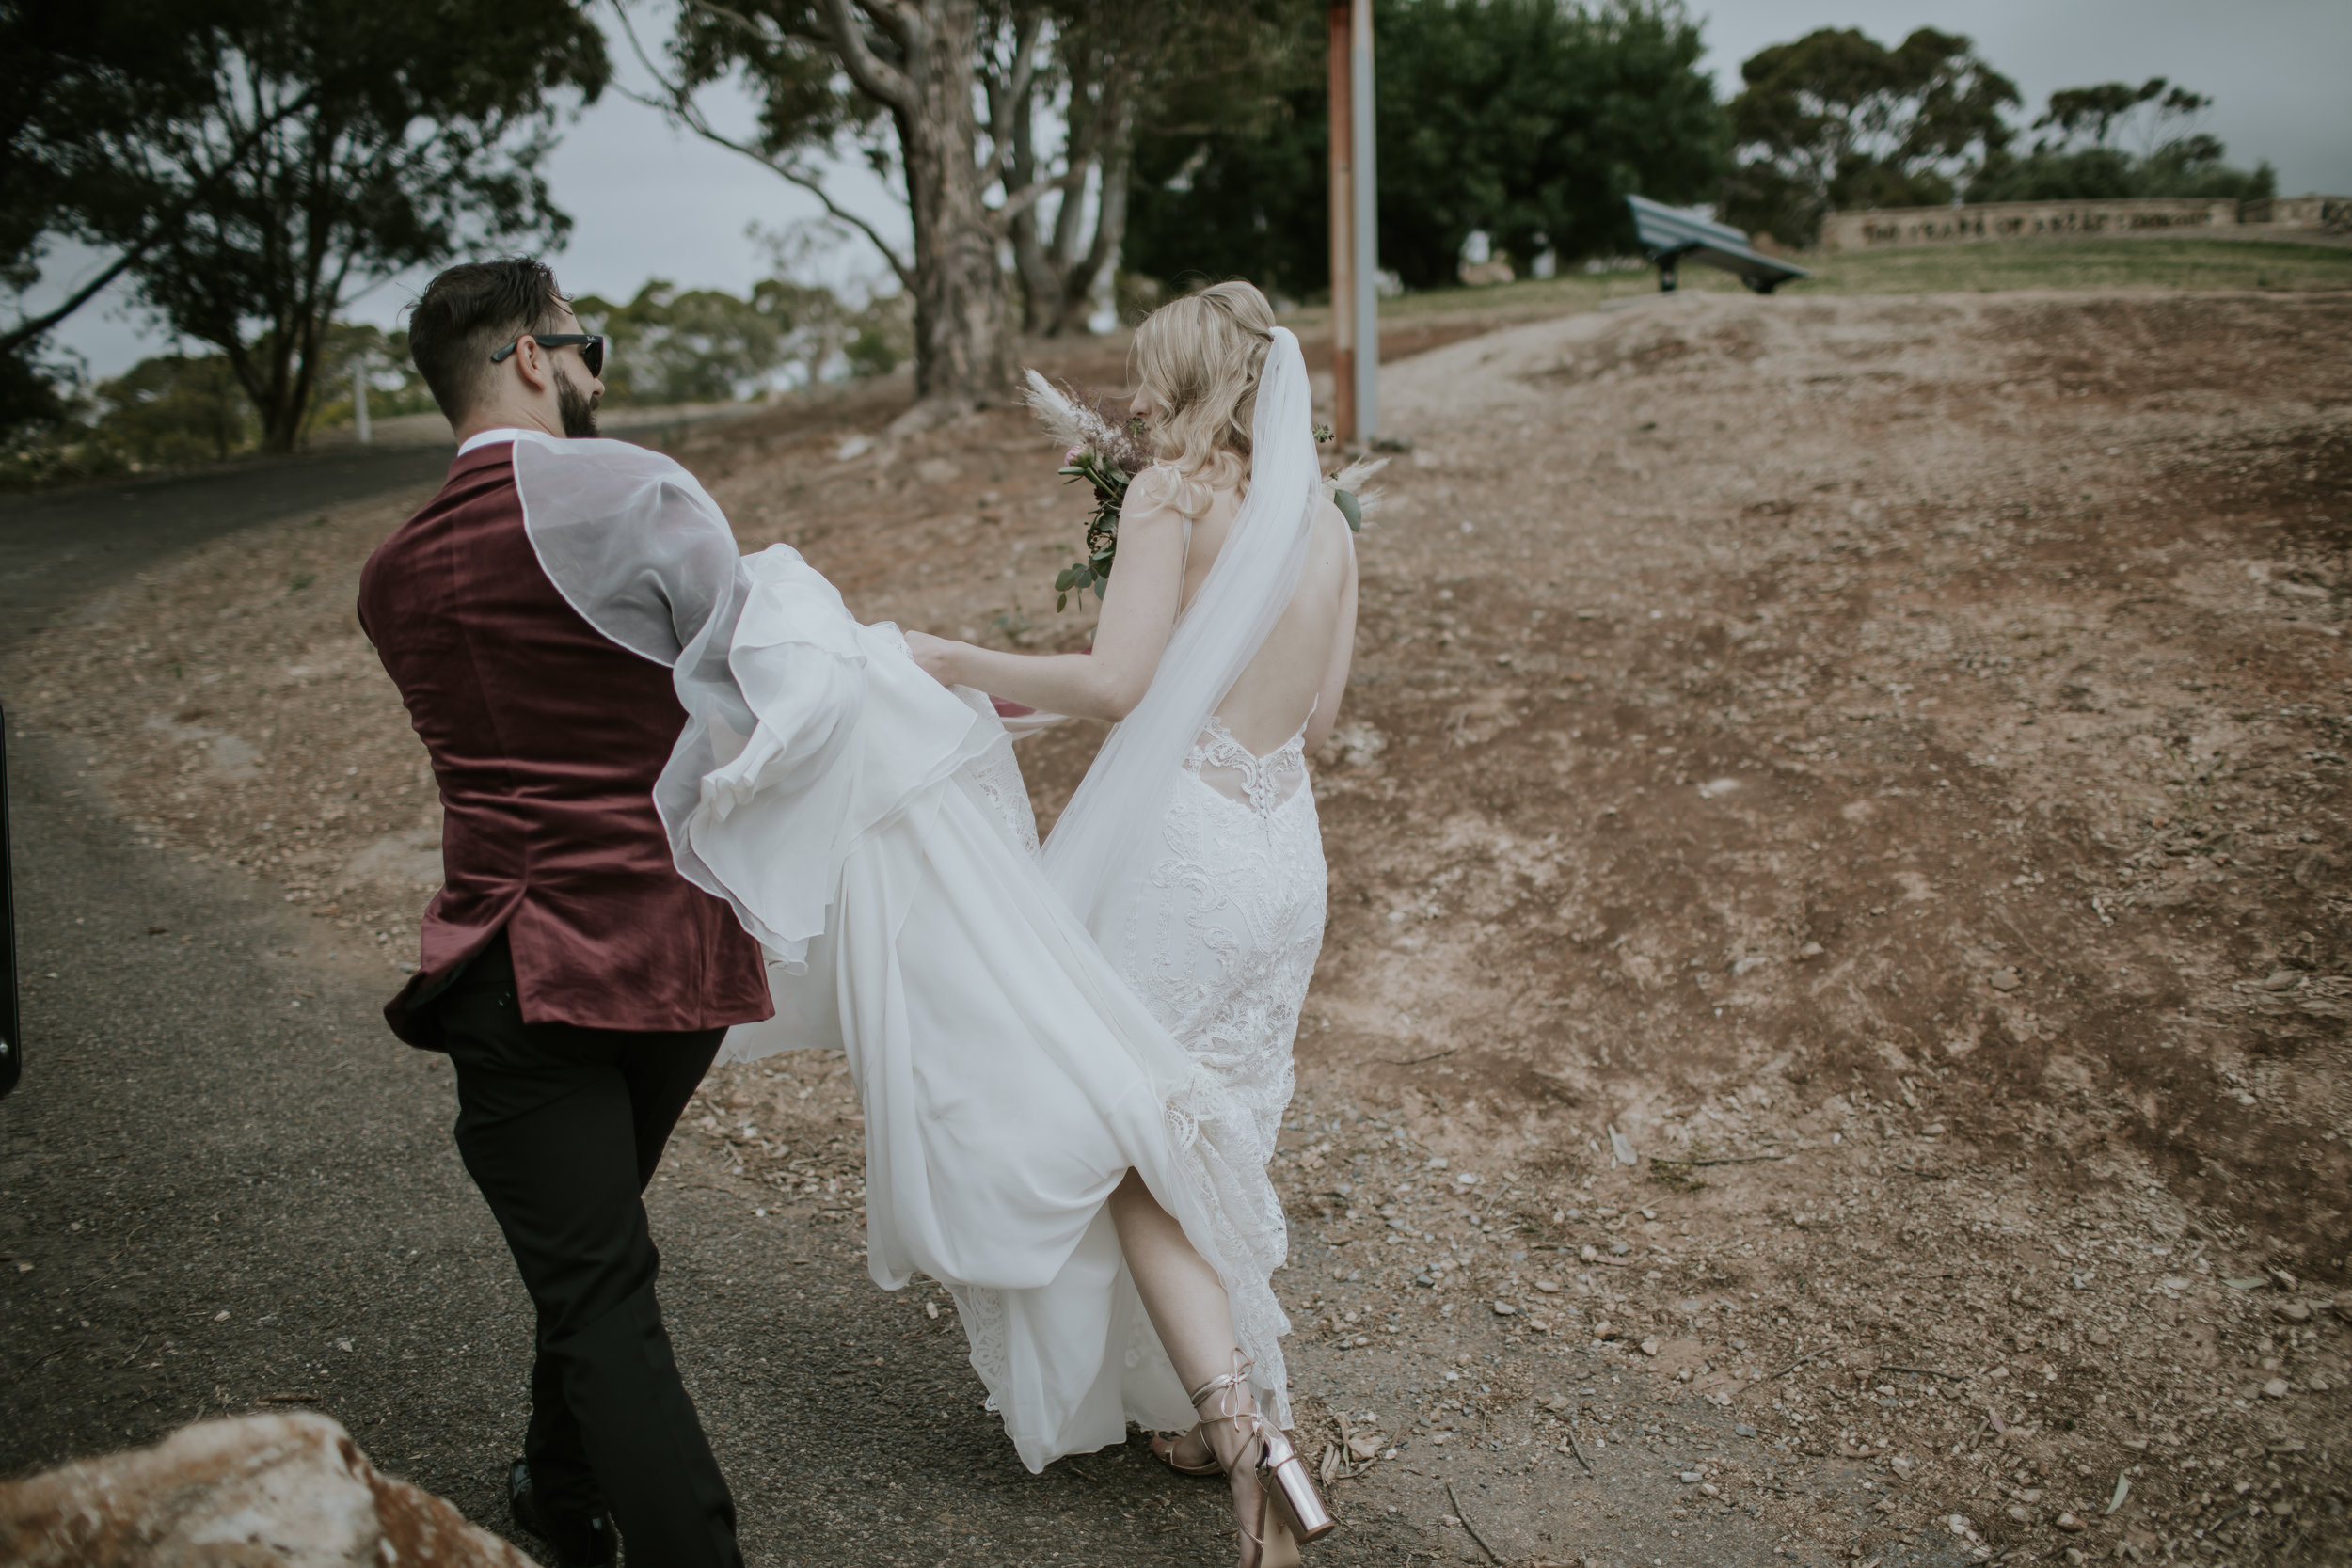 W.Travis-Benny-weddings-wedding-photographer-adelaide-Alia-Levi-1-615.jpg